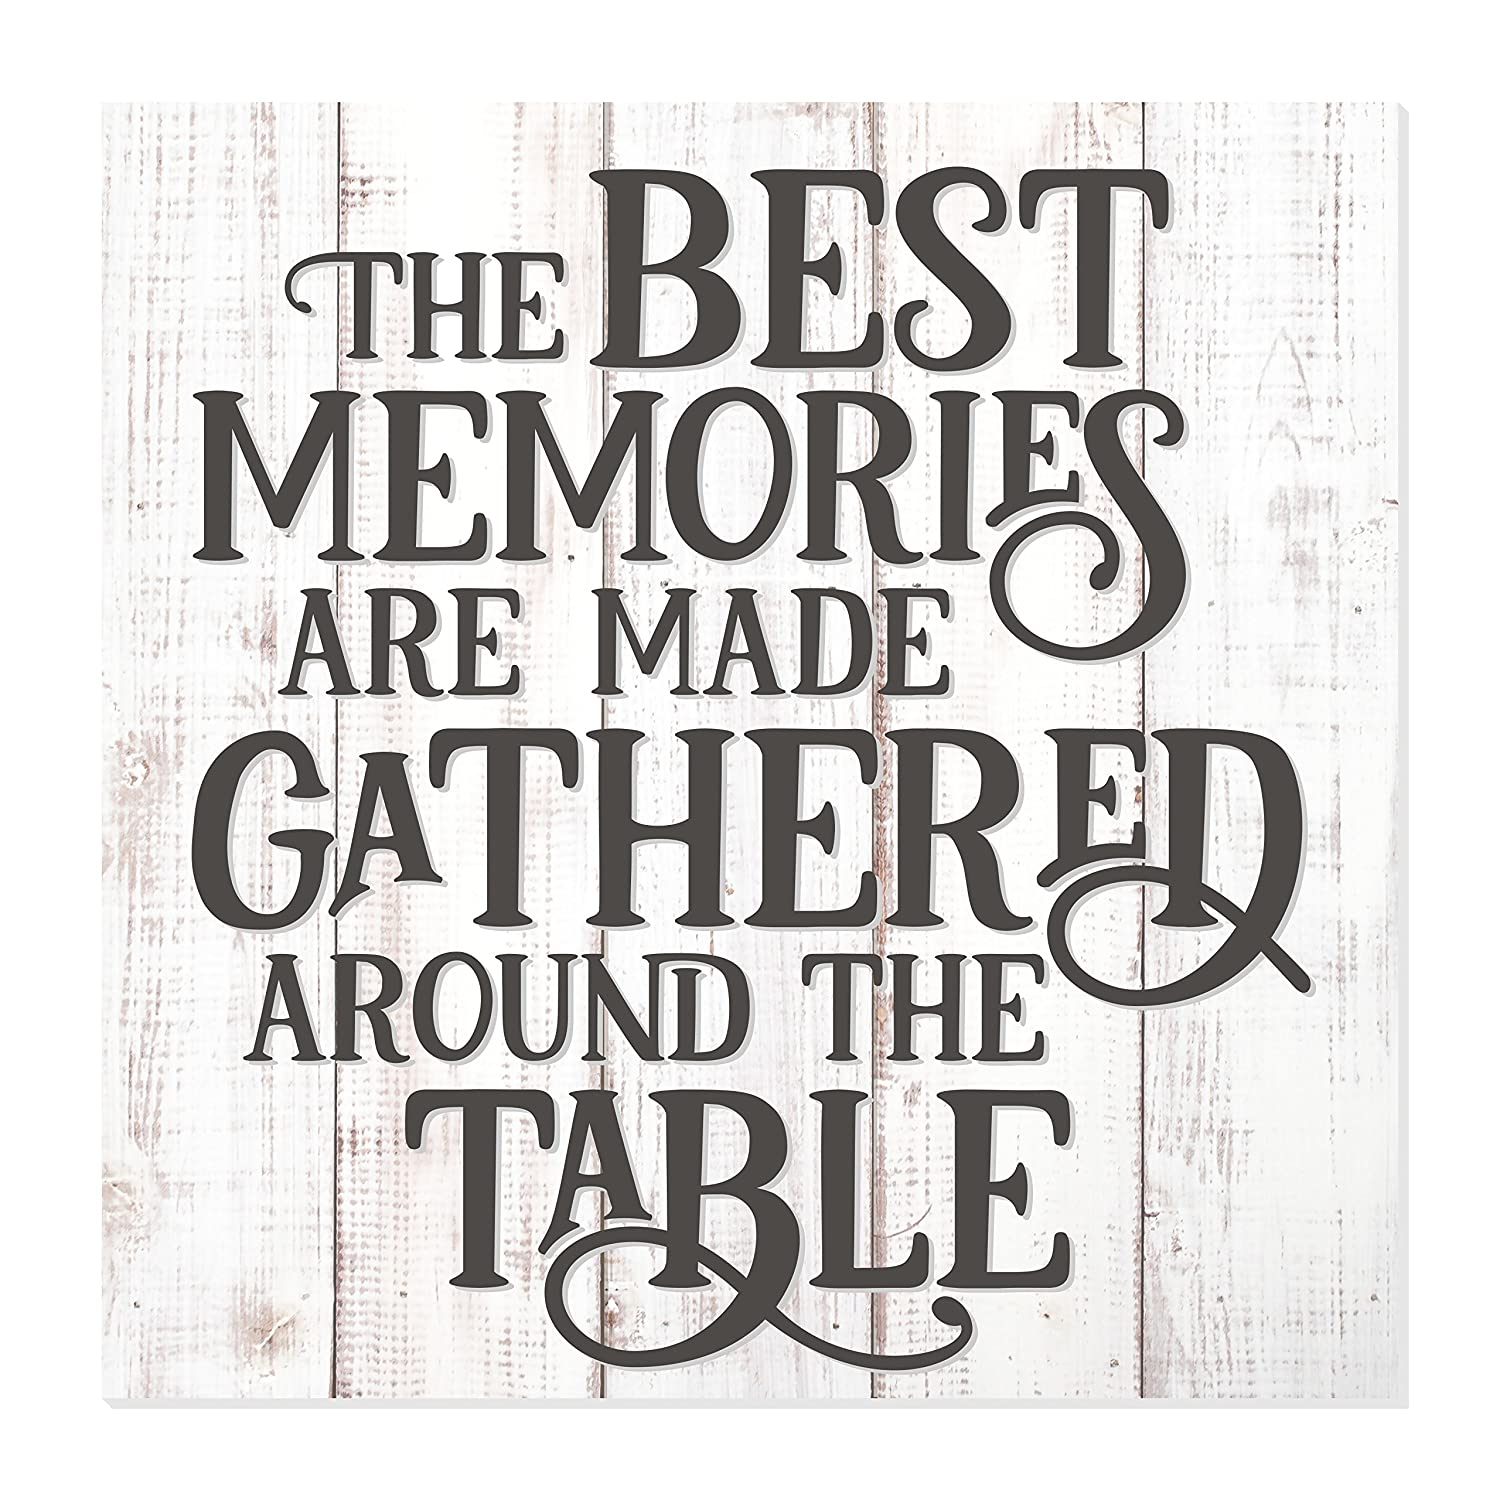 The Best Memories are Made Gathered at The Table Rustic Wood Wall Sign 12x12